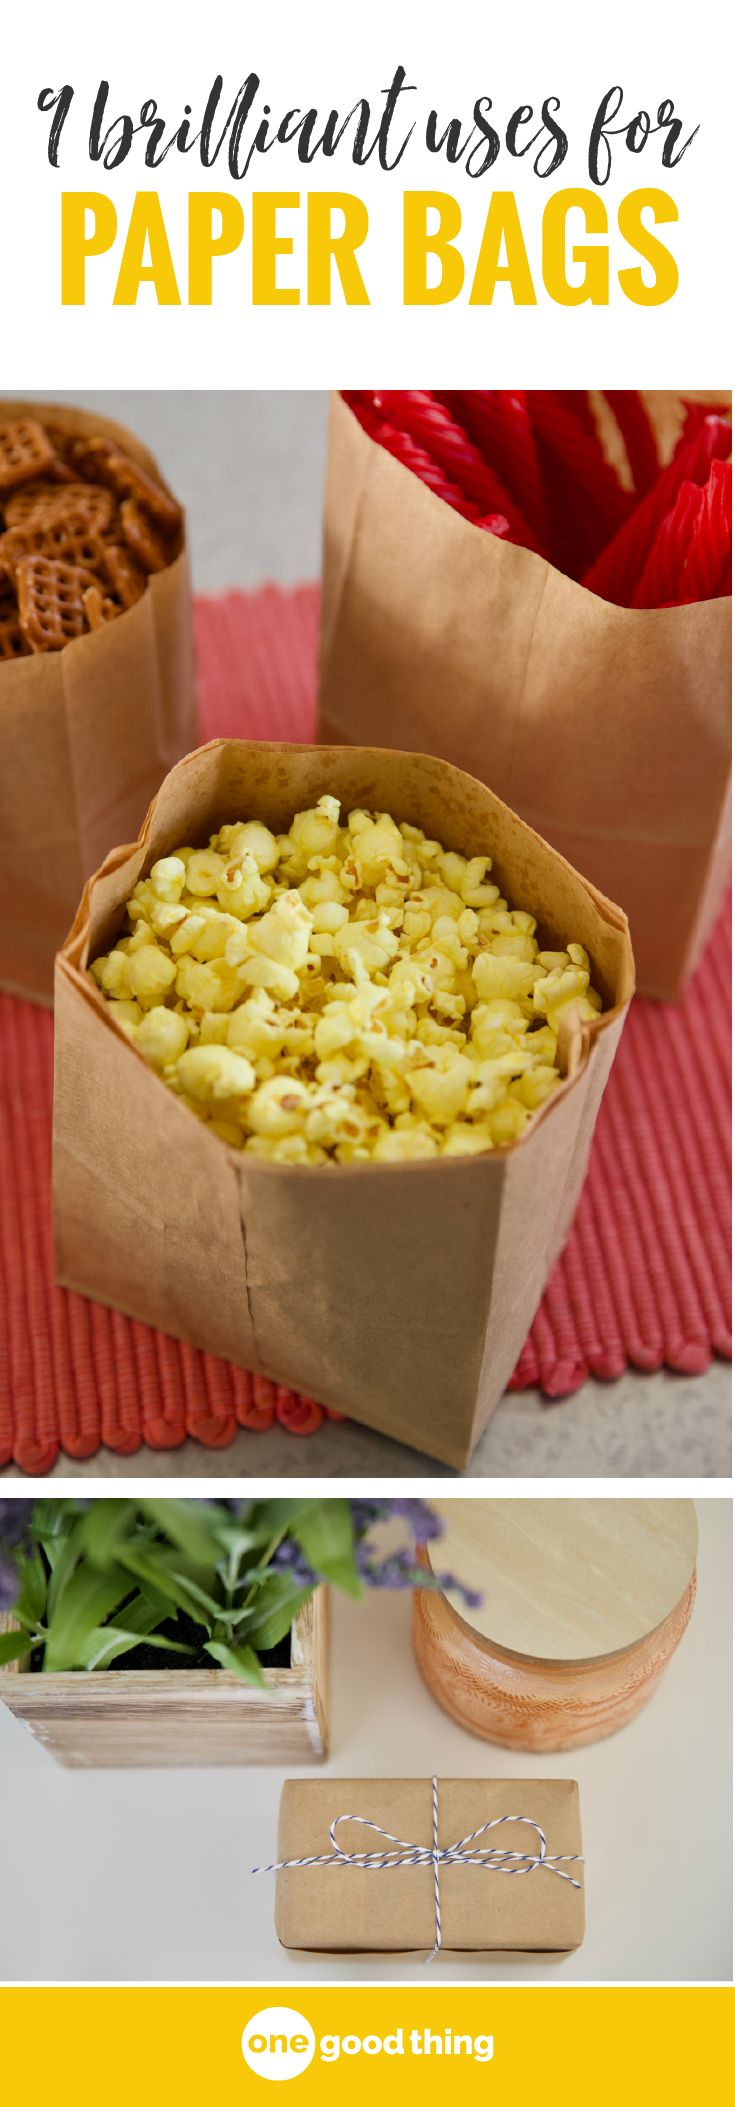 Today I'm sharing 9 of my very favorite ways to put use brown paper bags. Learn how to use a paper bag to ripen fruit, make popcorn, package gifts, and more!